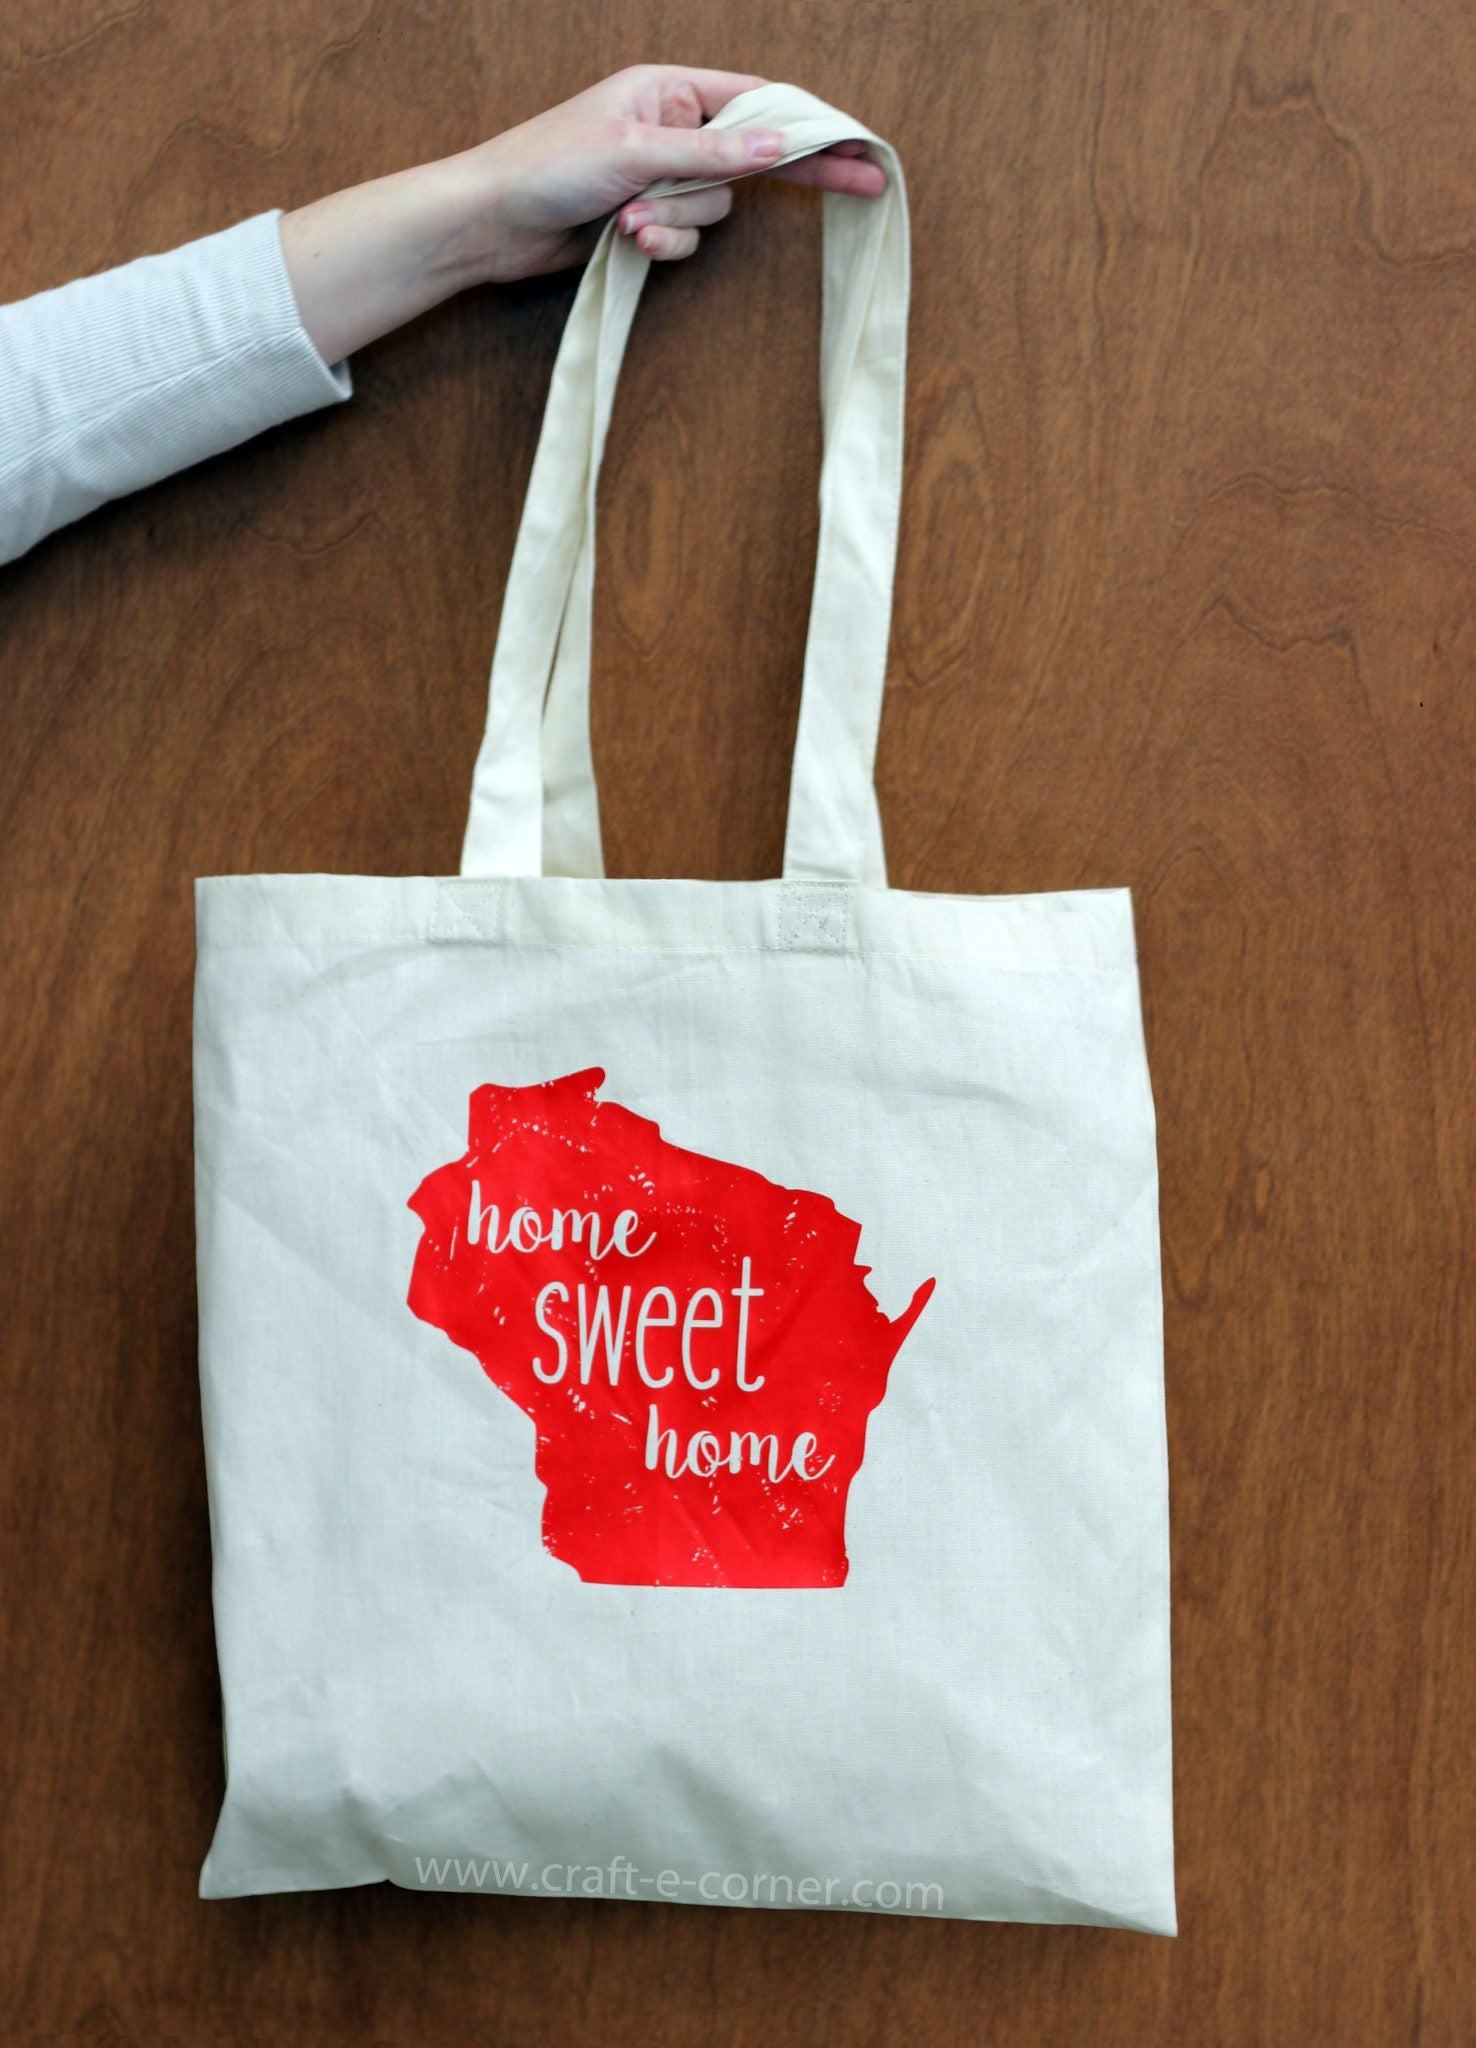 Home Sweet Home Wisconsin reusable shopping bag.